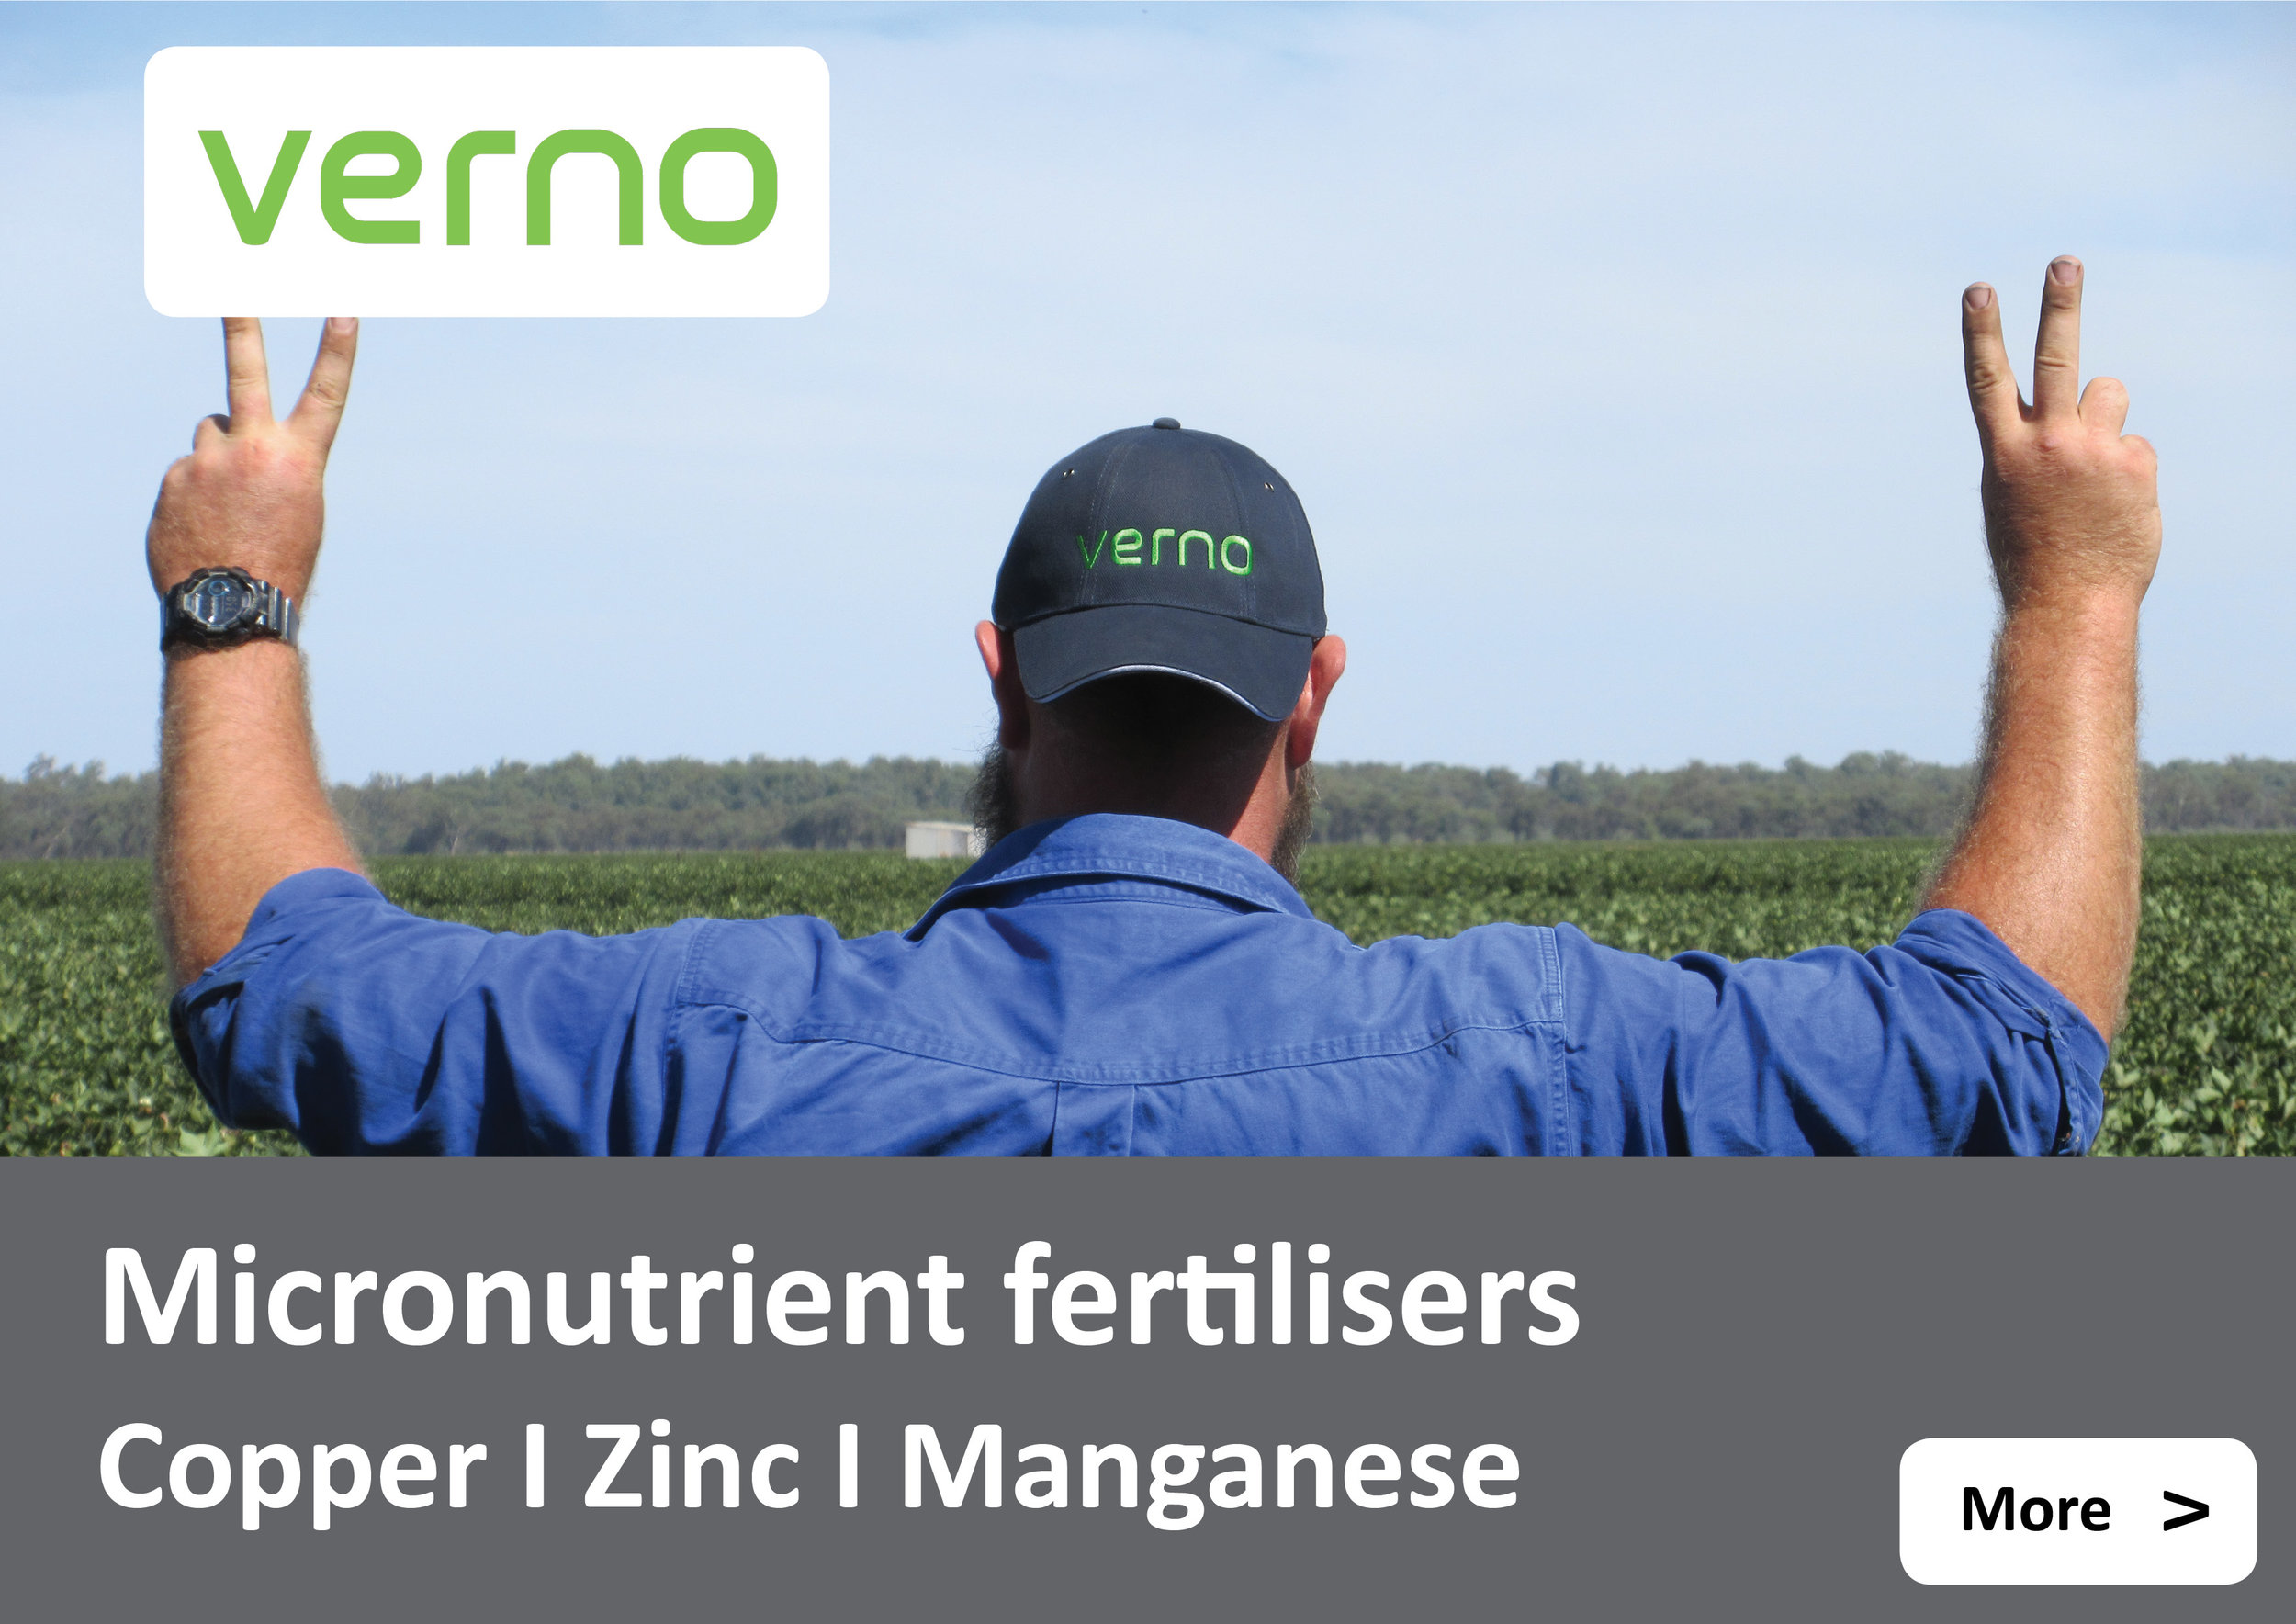 Verno micronutrients - copper, zinc, manganese